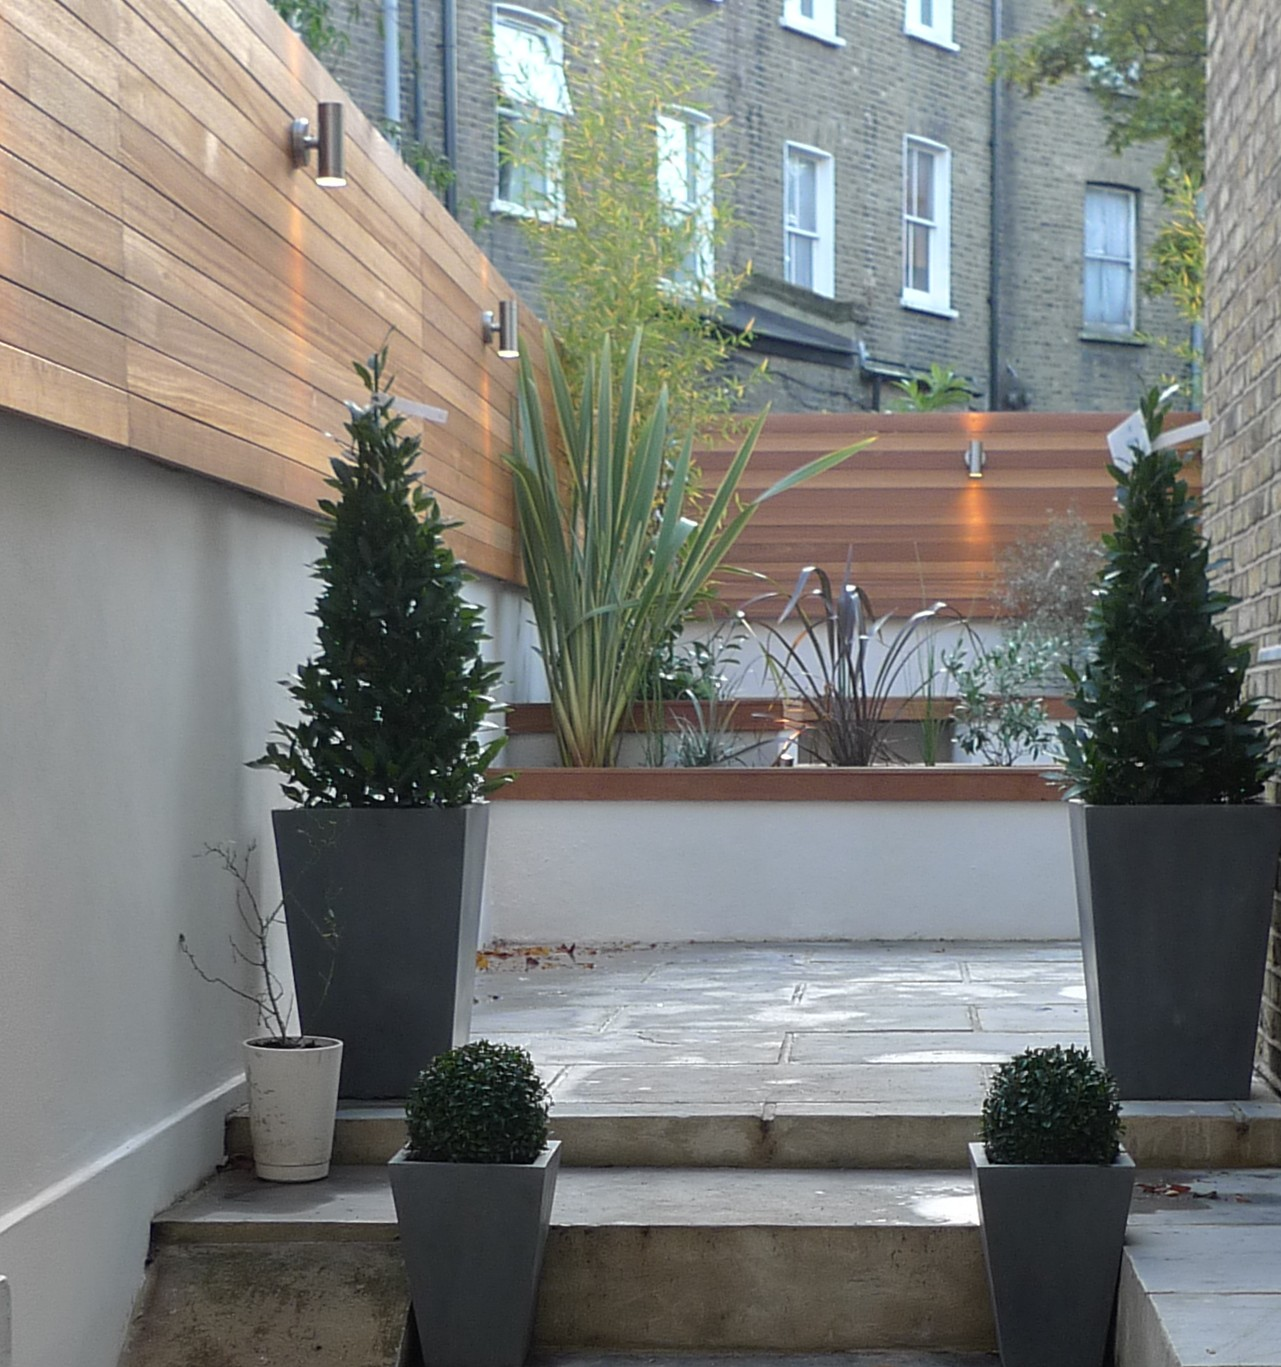 grey-sandstone-paving-with-hardwood-benches.JPG